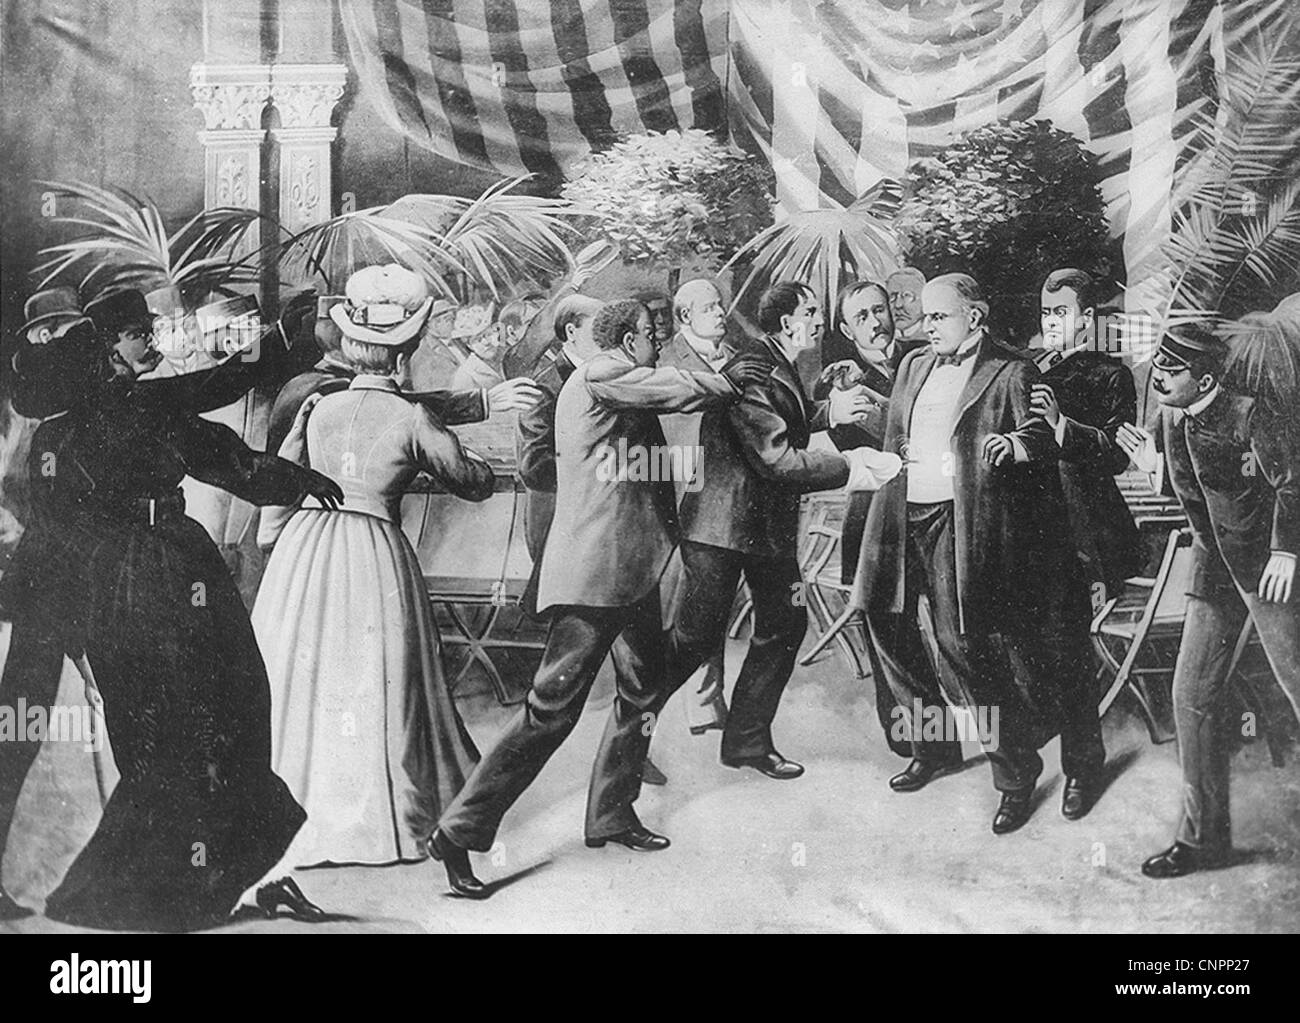 Assassination of President McKinley - Czolgosz shoots President McKinley with a concealed revolver, at Pan-American - Stock Image